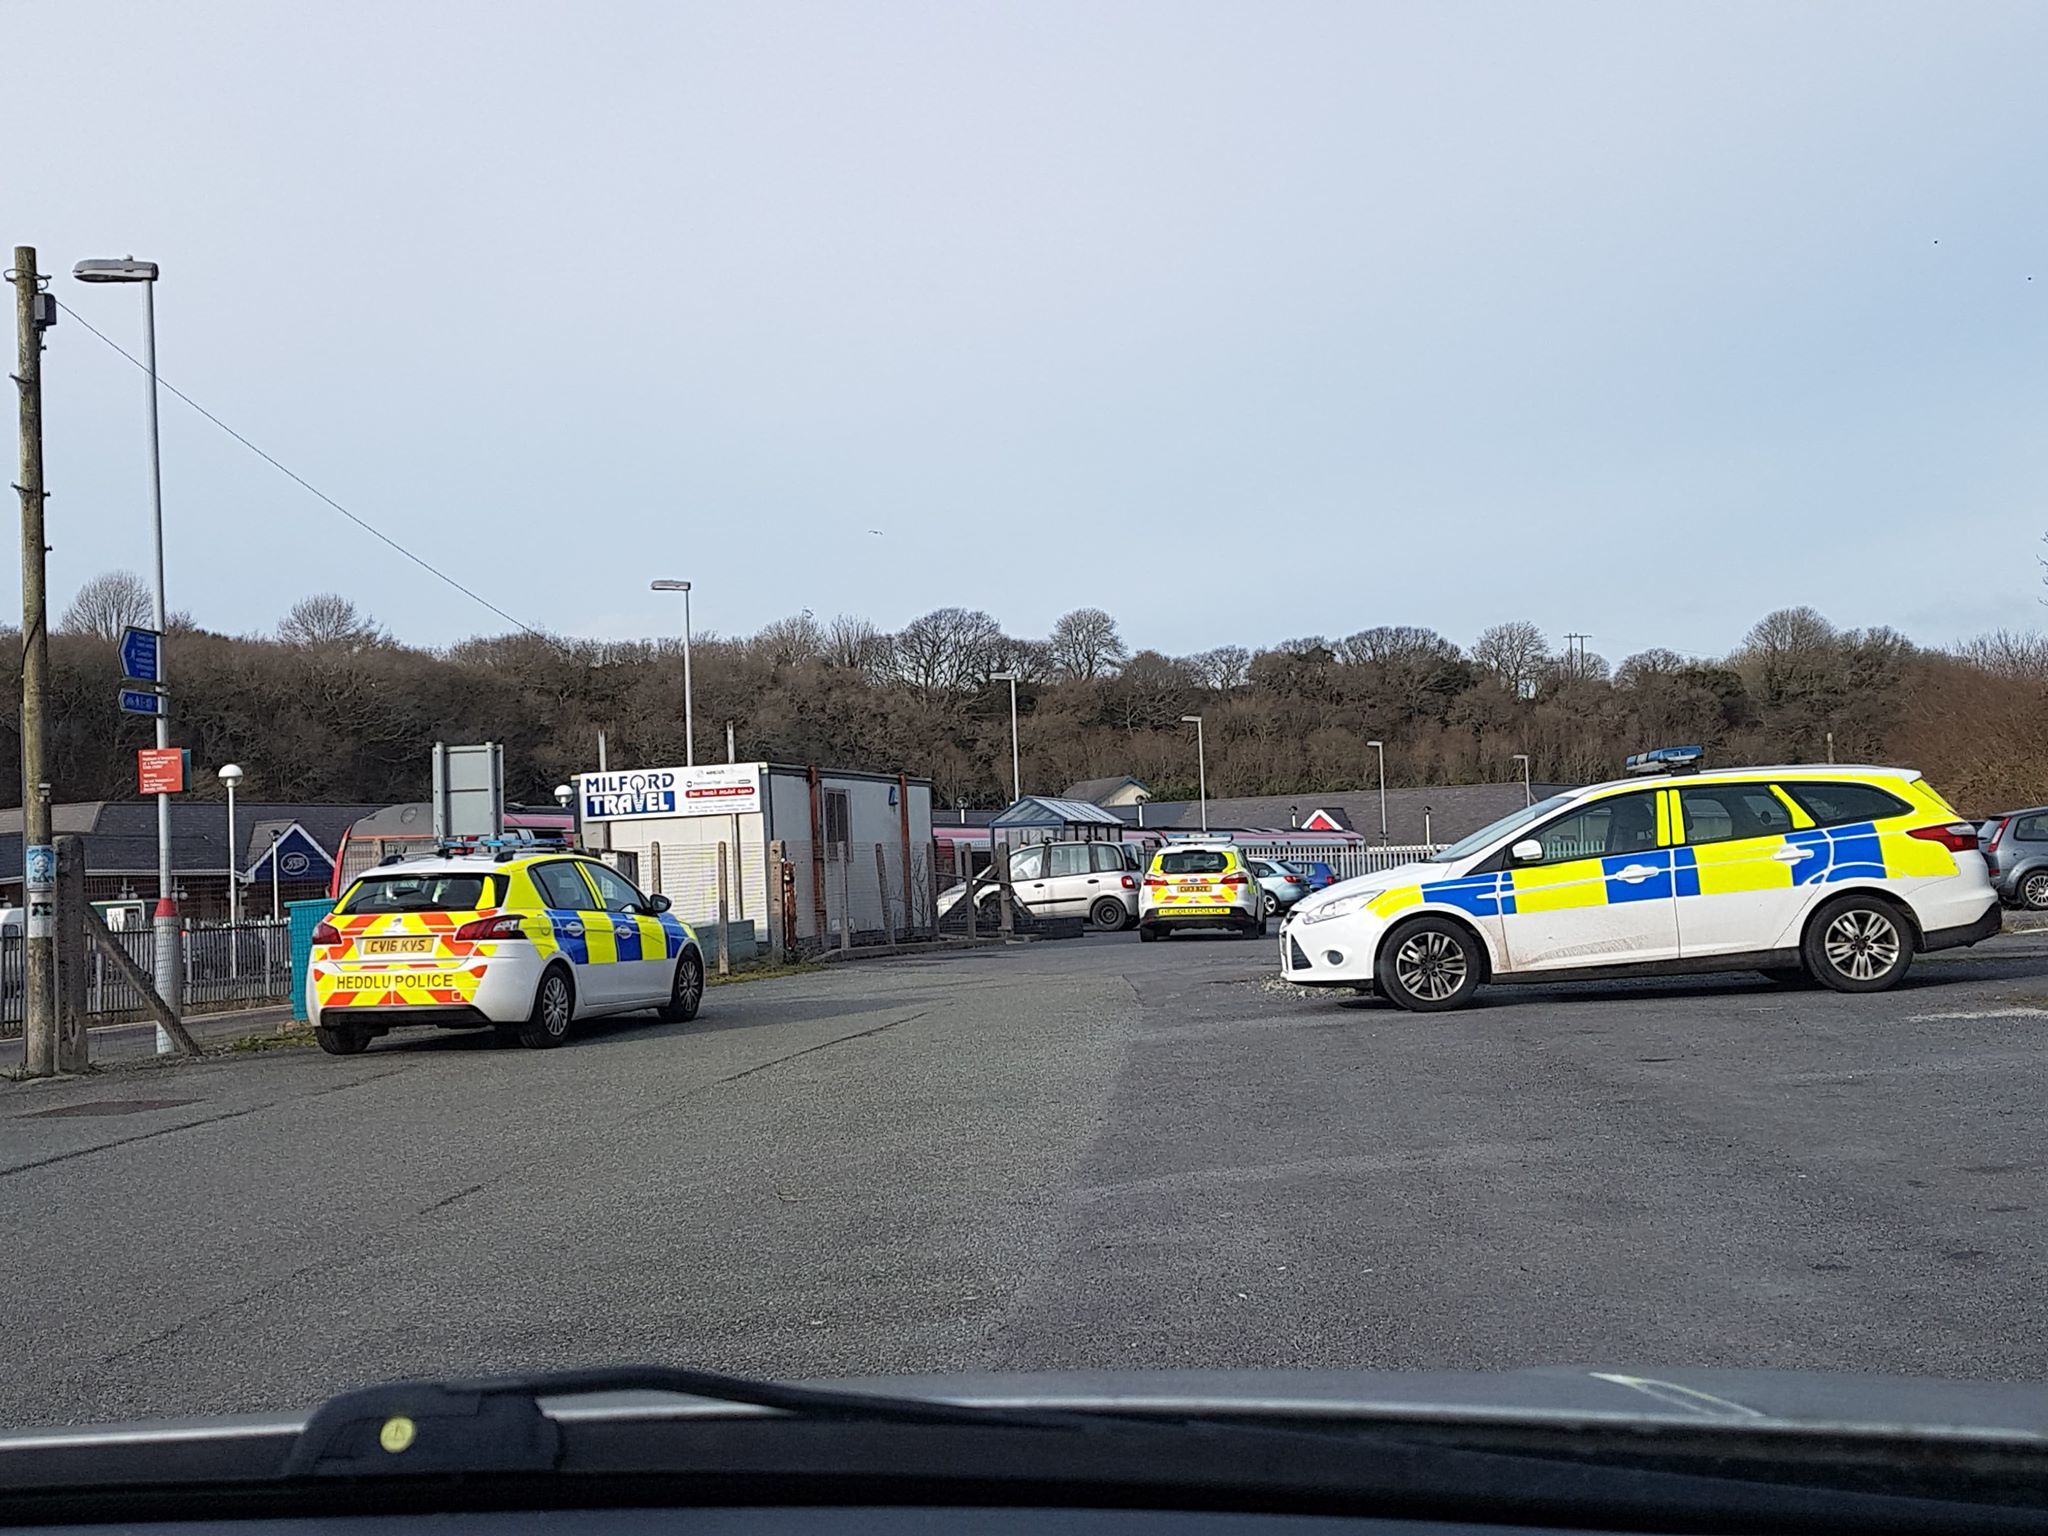 Police attending the incident at Milford Haven railway station.